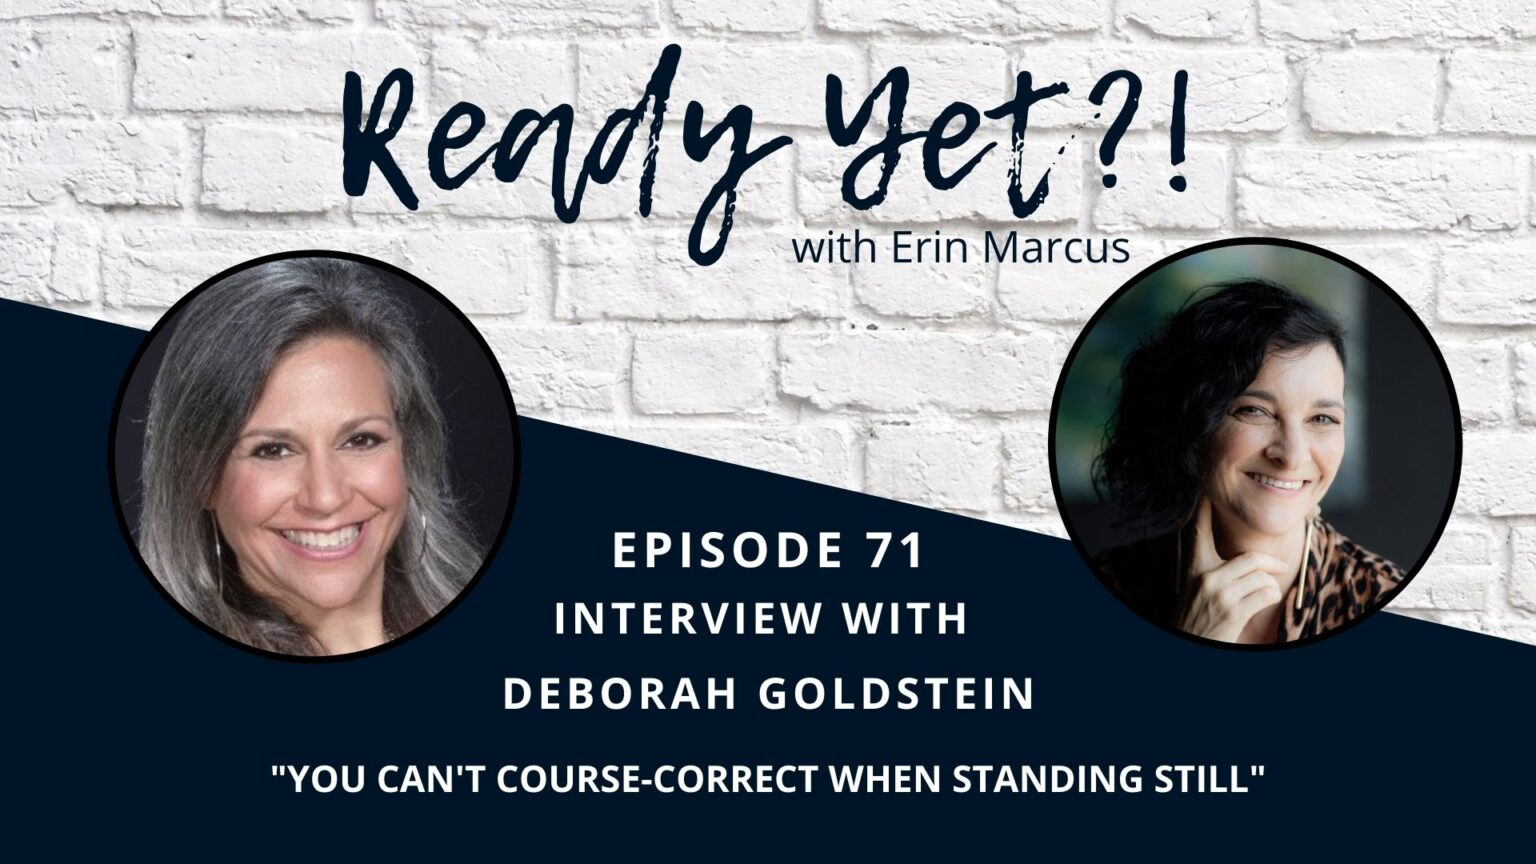 Episode 71 Interview with Deborah Goldstein: You Can't Course-Correct When Standing Still